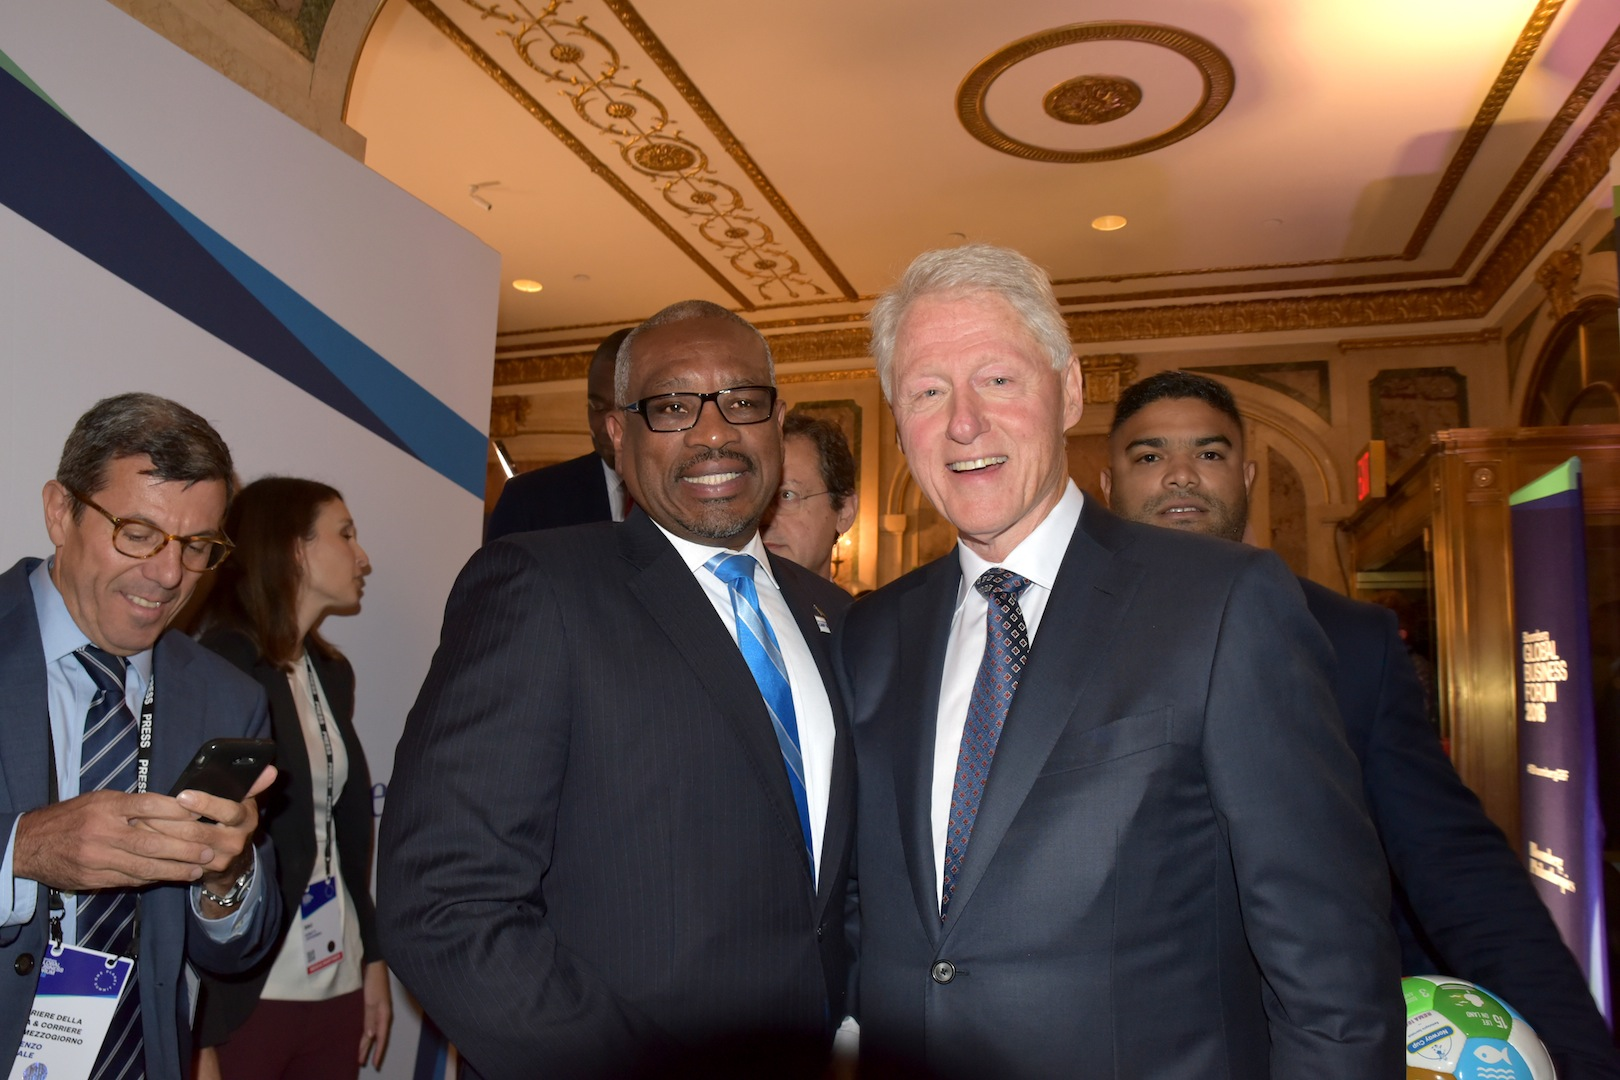 PM attends Bloomberg Global Business Forum in NY